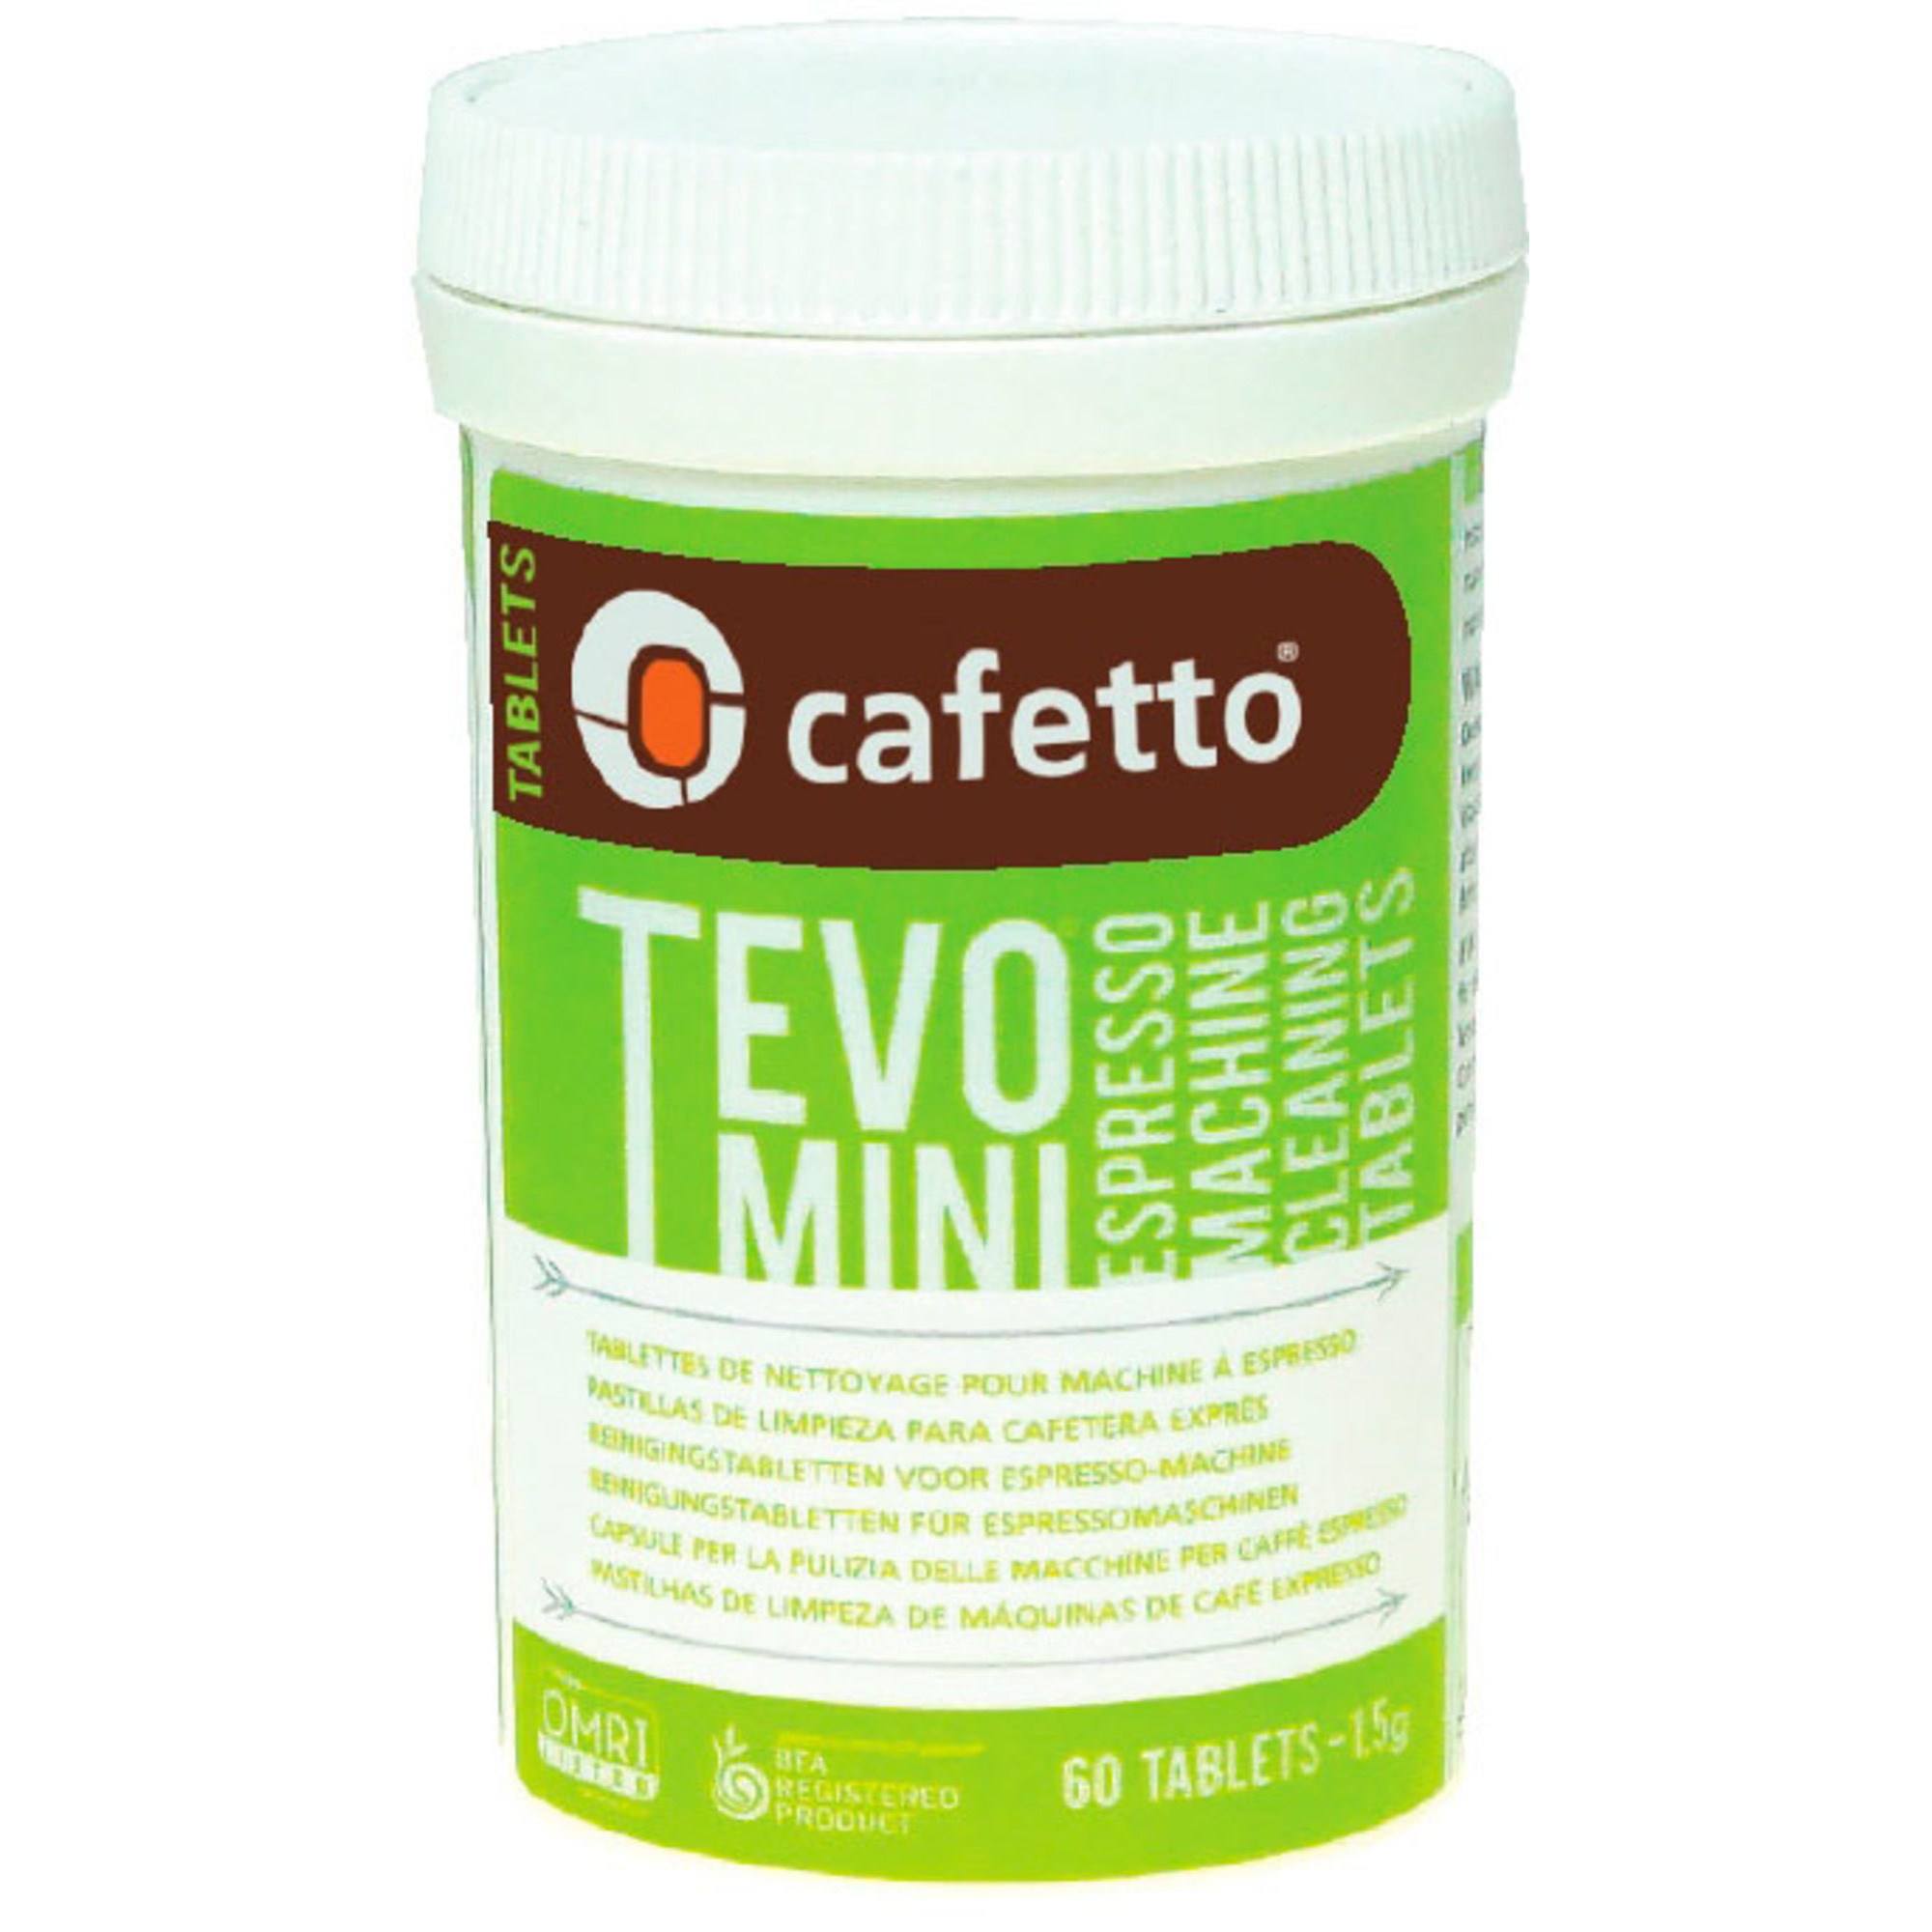 Cafetto TEVO Mini Rengöringstabletter